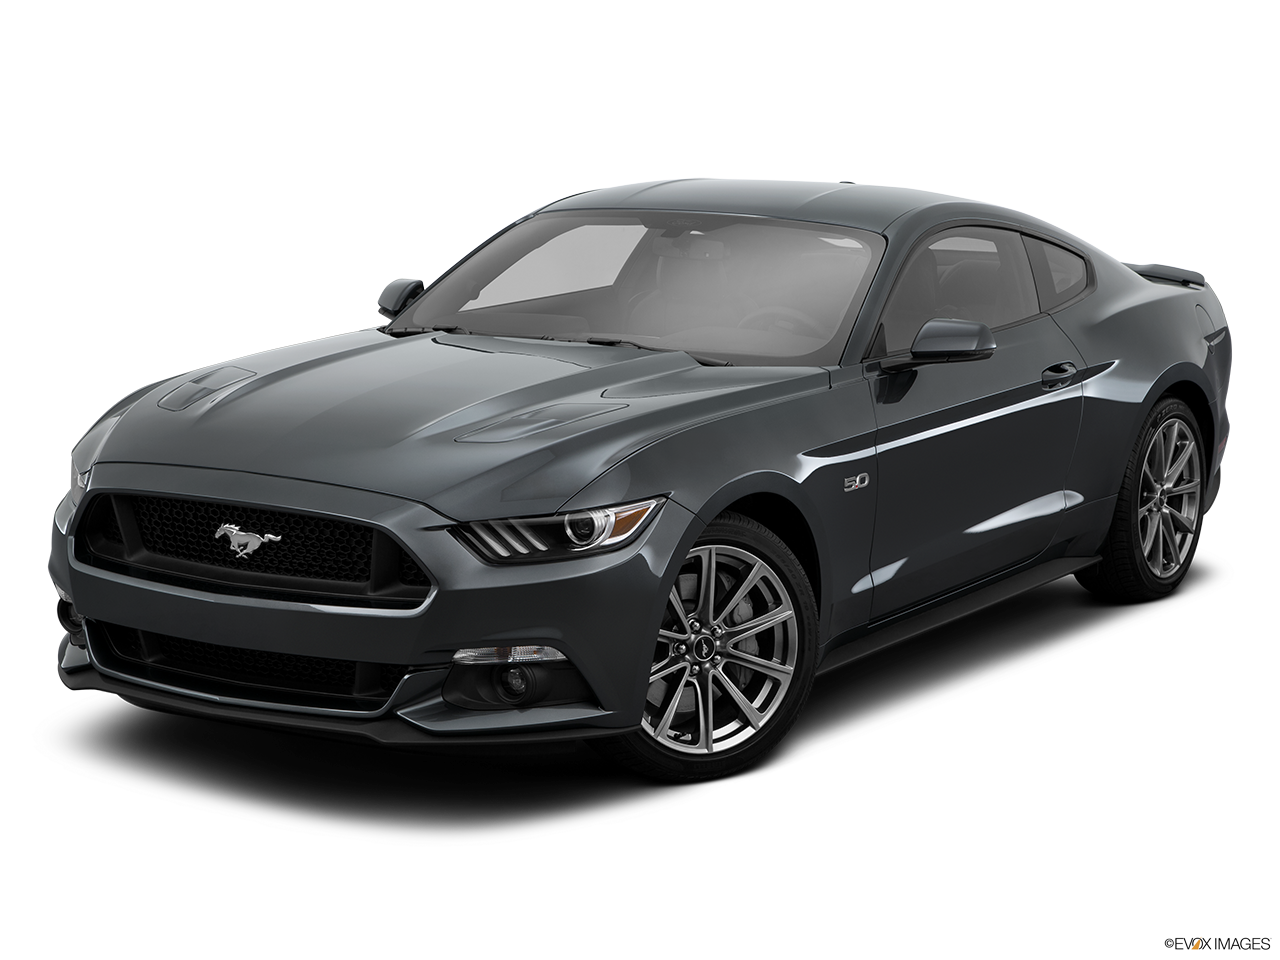 Test Drive A 2015 Ford Mustang at Doenges Ford in Tulsa